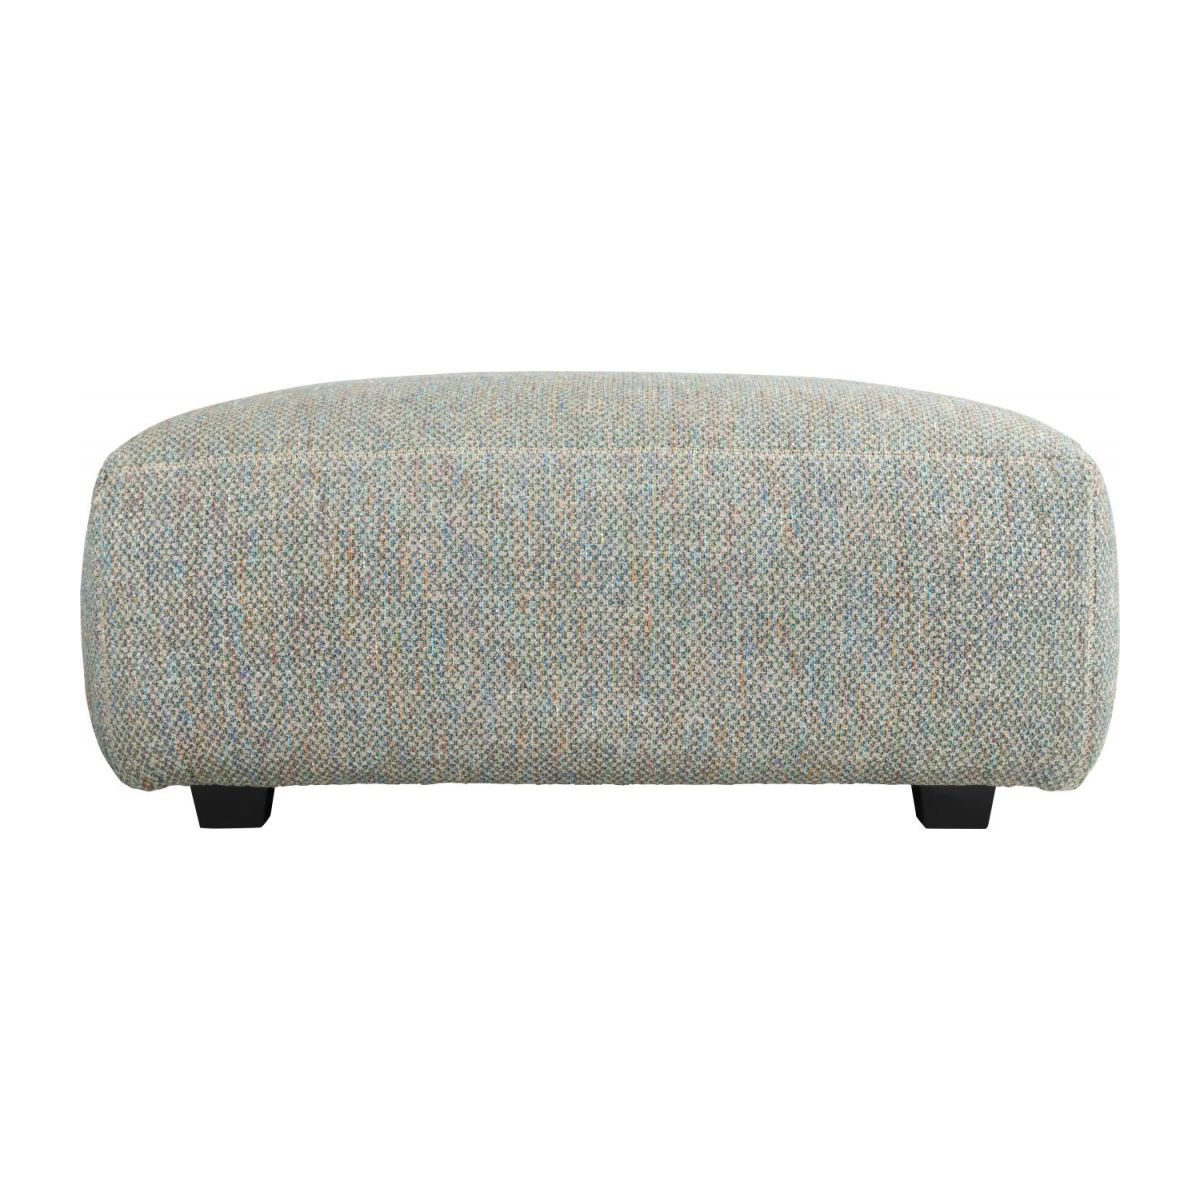 Hocker aus Stoff Bellagio organic green n°3